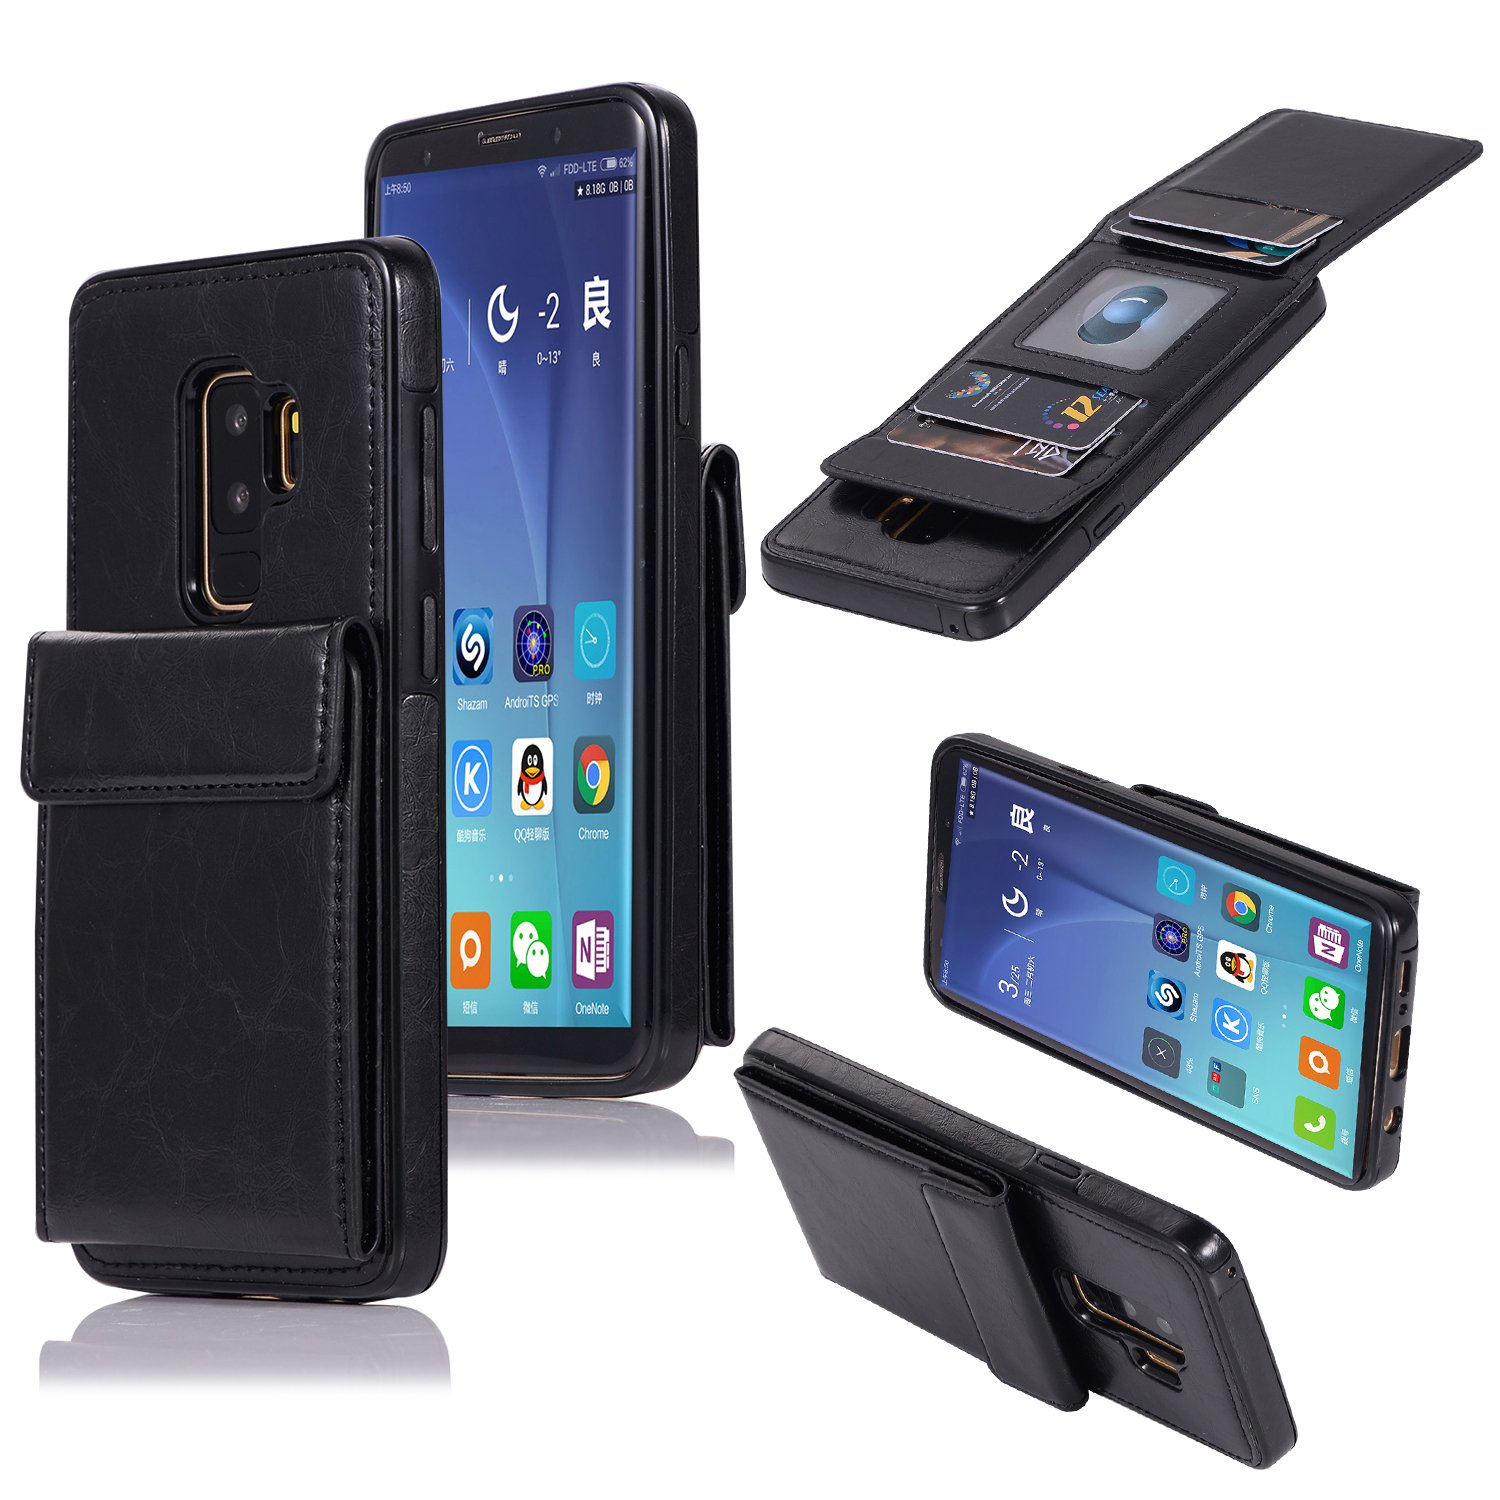 DAMONDY Wallet Case for Galaxy S9 Plus,Luxury Wallet Purse Card Holders Design Cover Soft Shockproof Bumper Folio Flip Leather Kickstand Case for Samsung Galaxy S9 Plus 6.2 inch (2018)-Black by DAMONDY